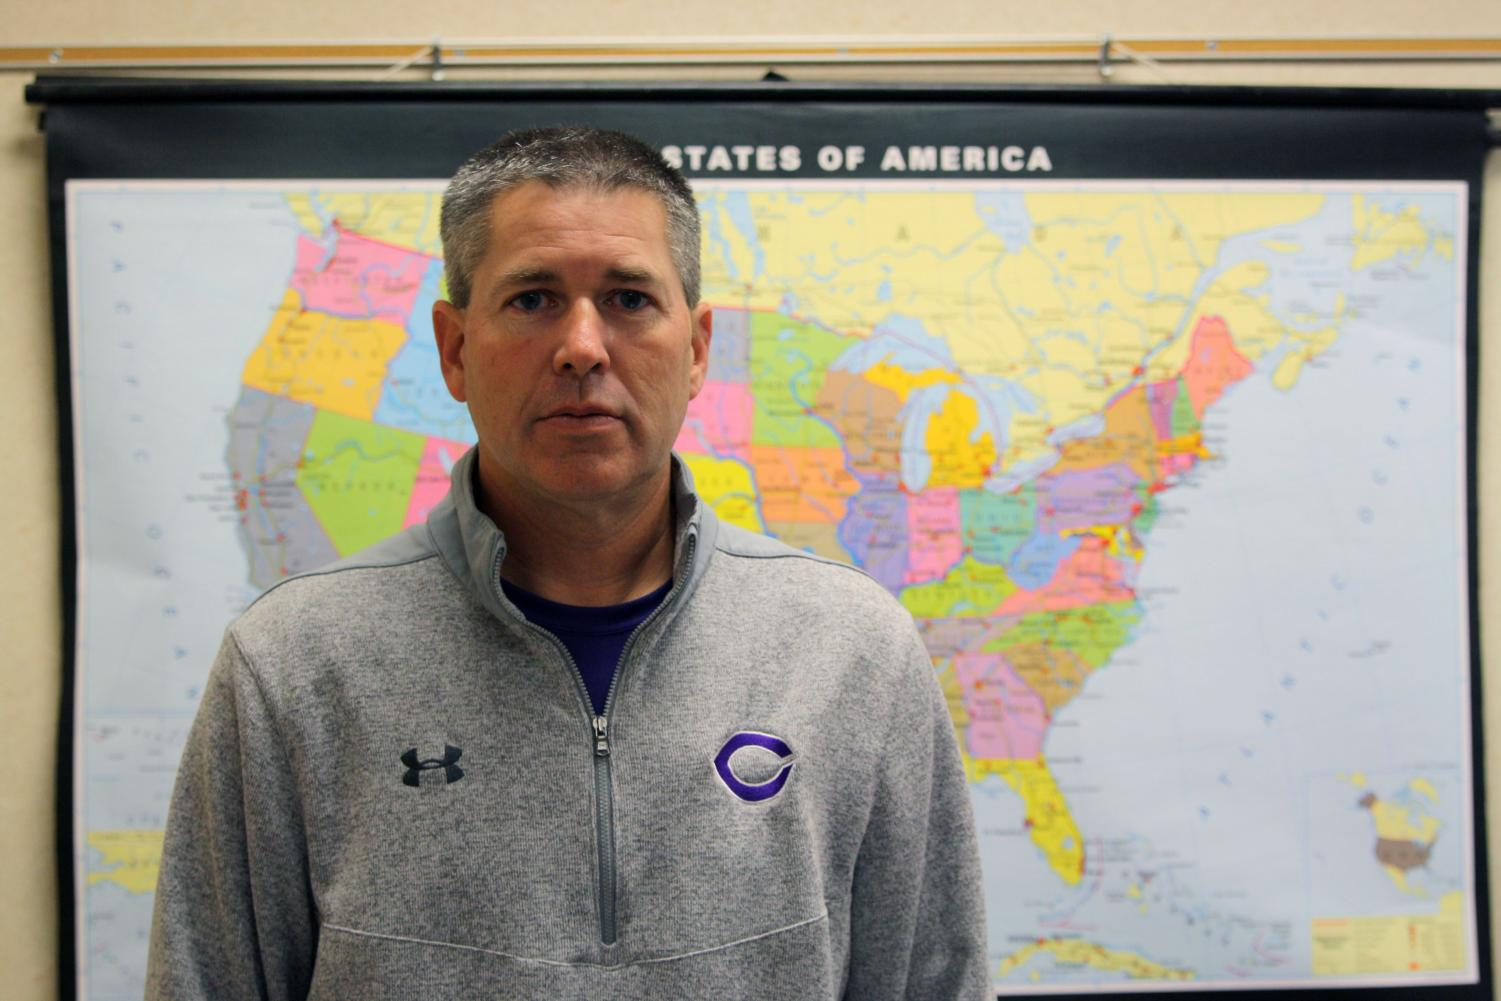 Veteran and history teacher Jeremy Chettinger stands in front of a map of the United States.